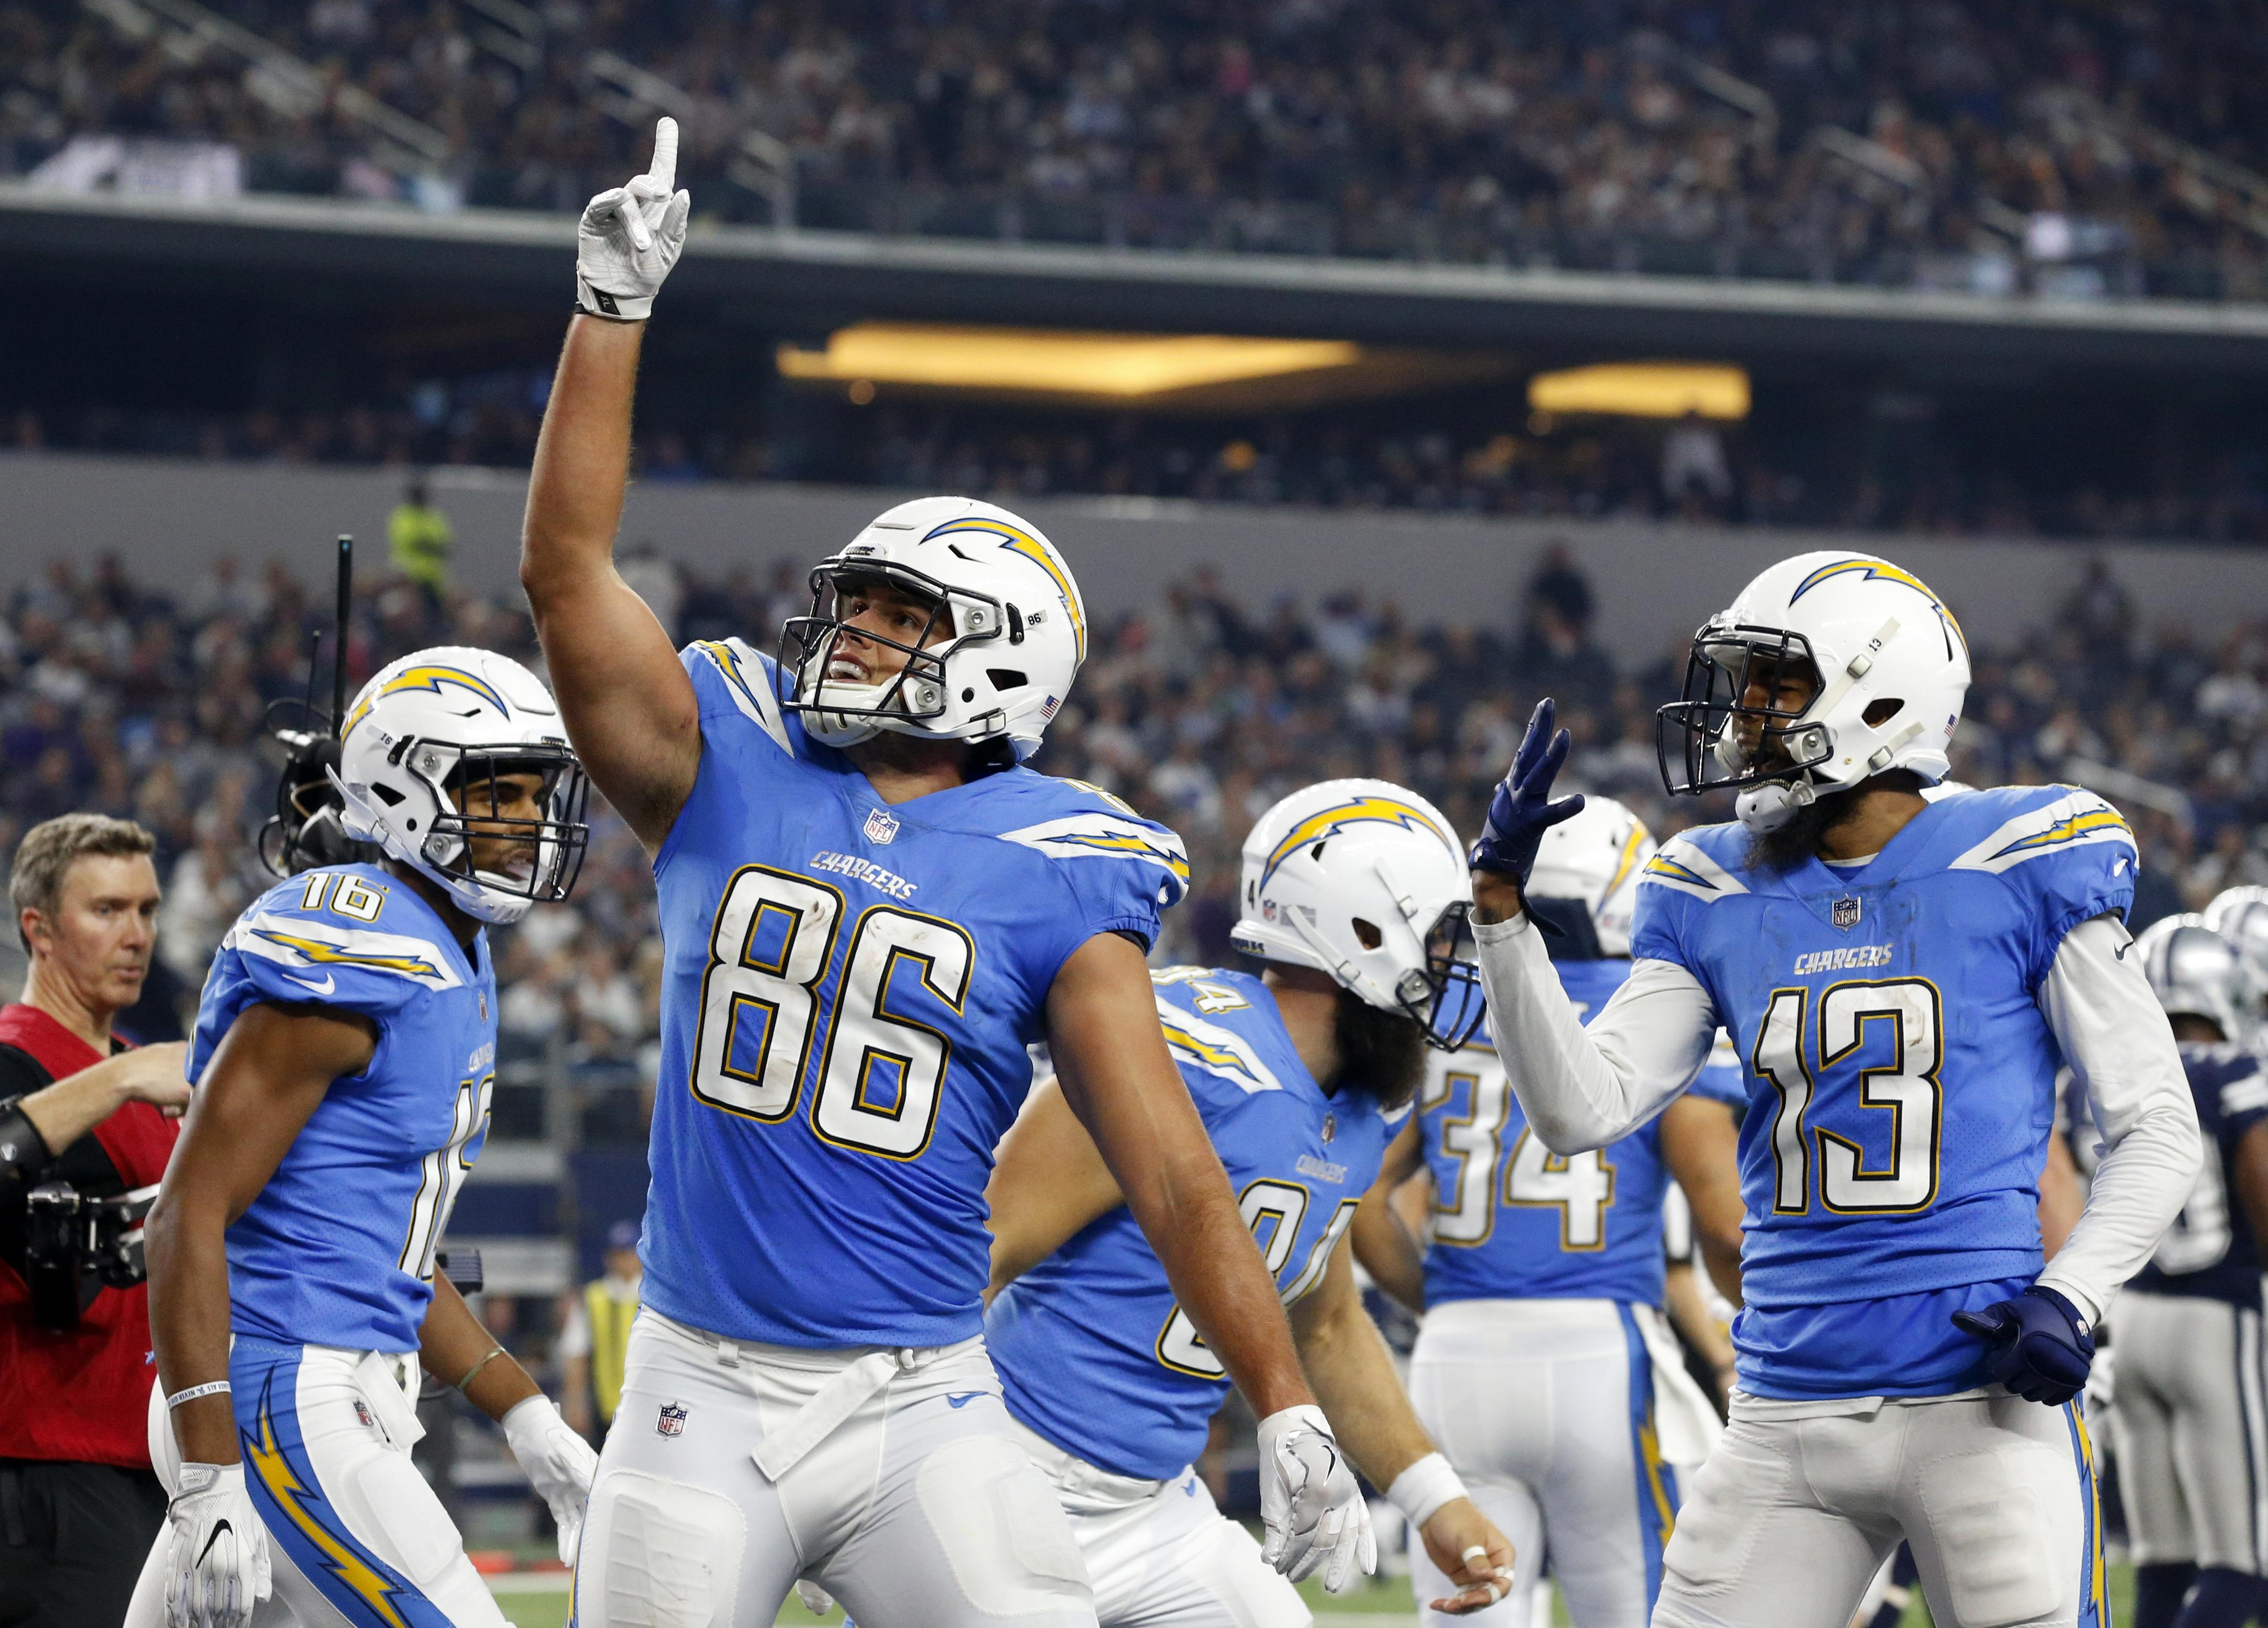 Chargers_cowboys_football_08424